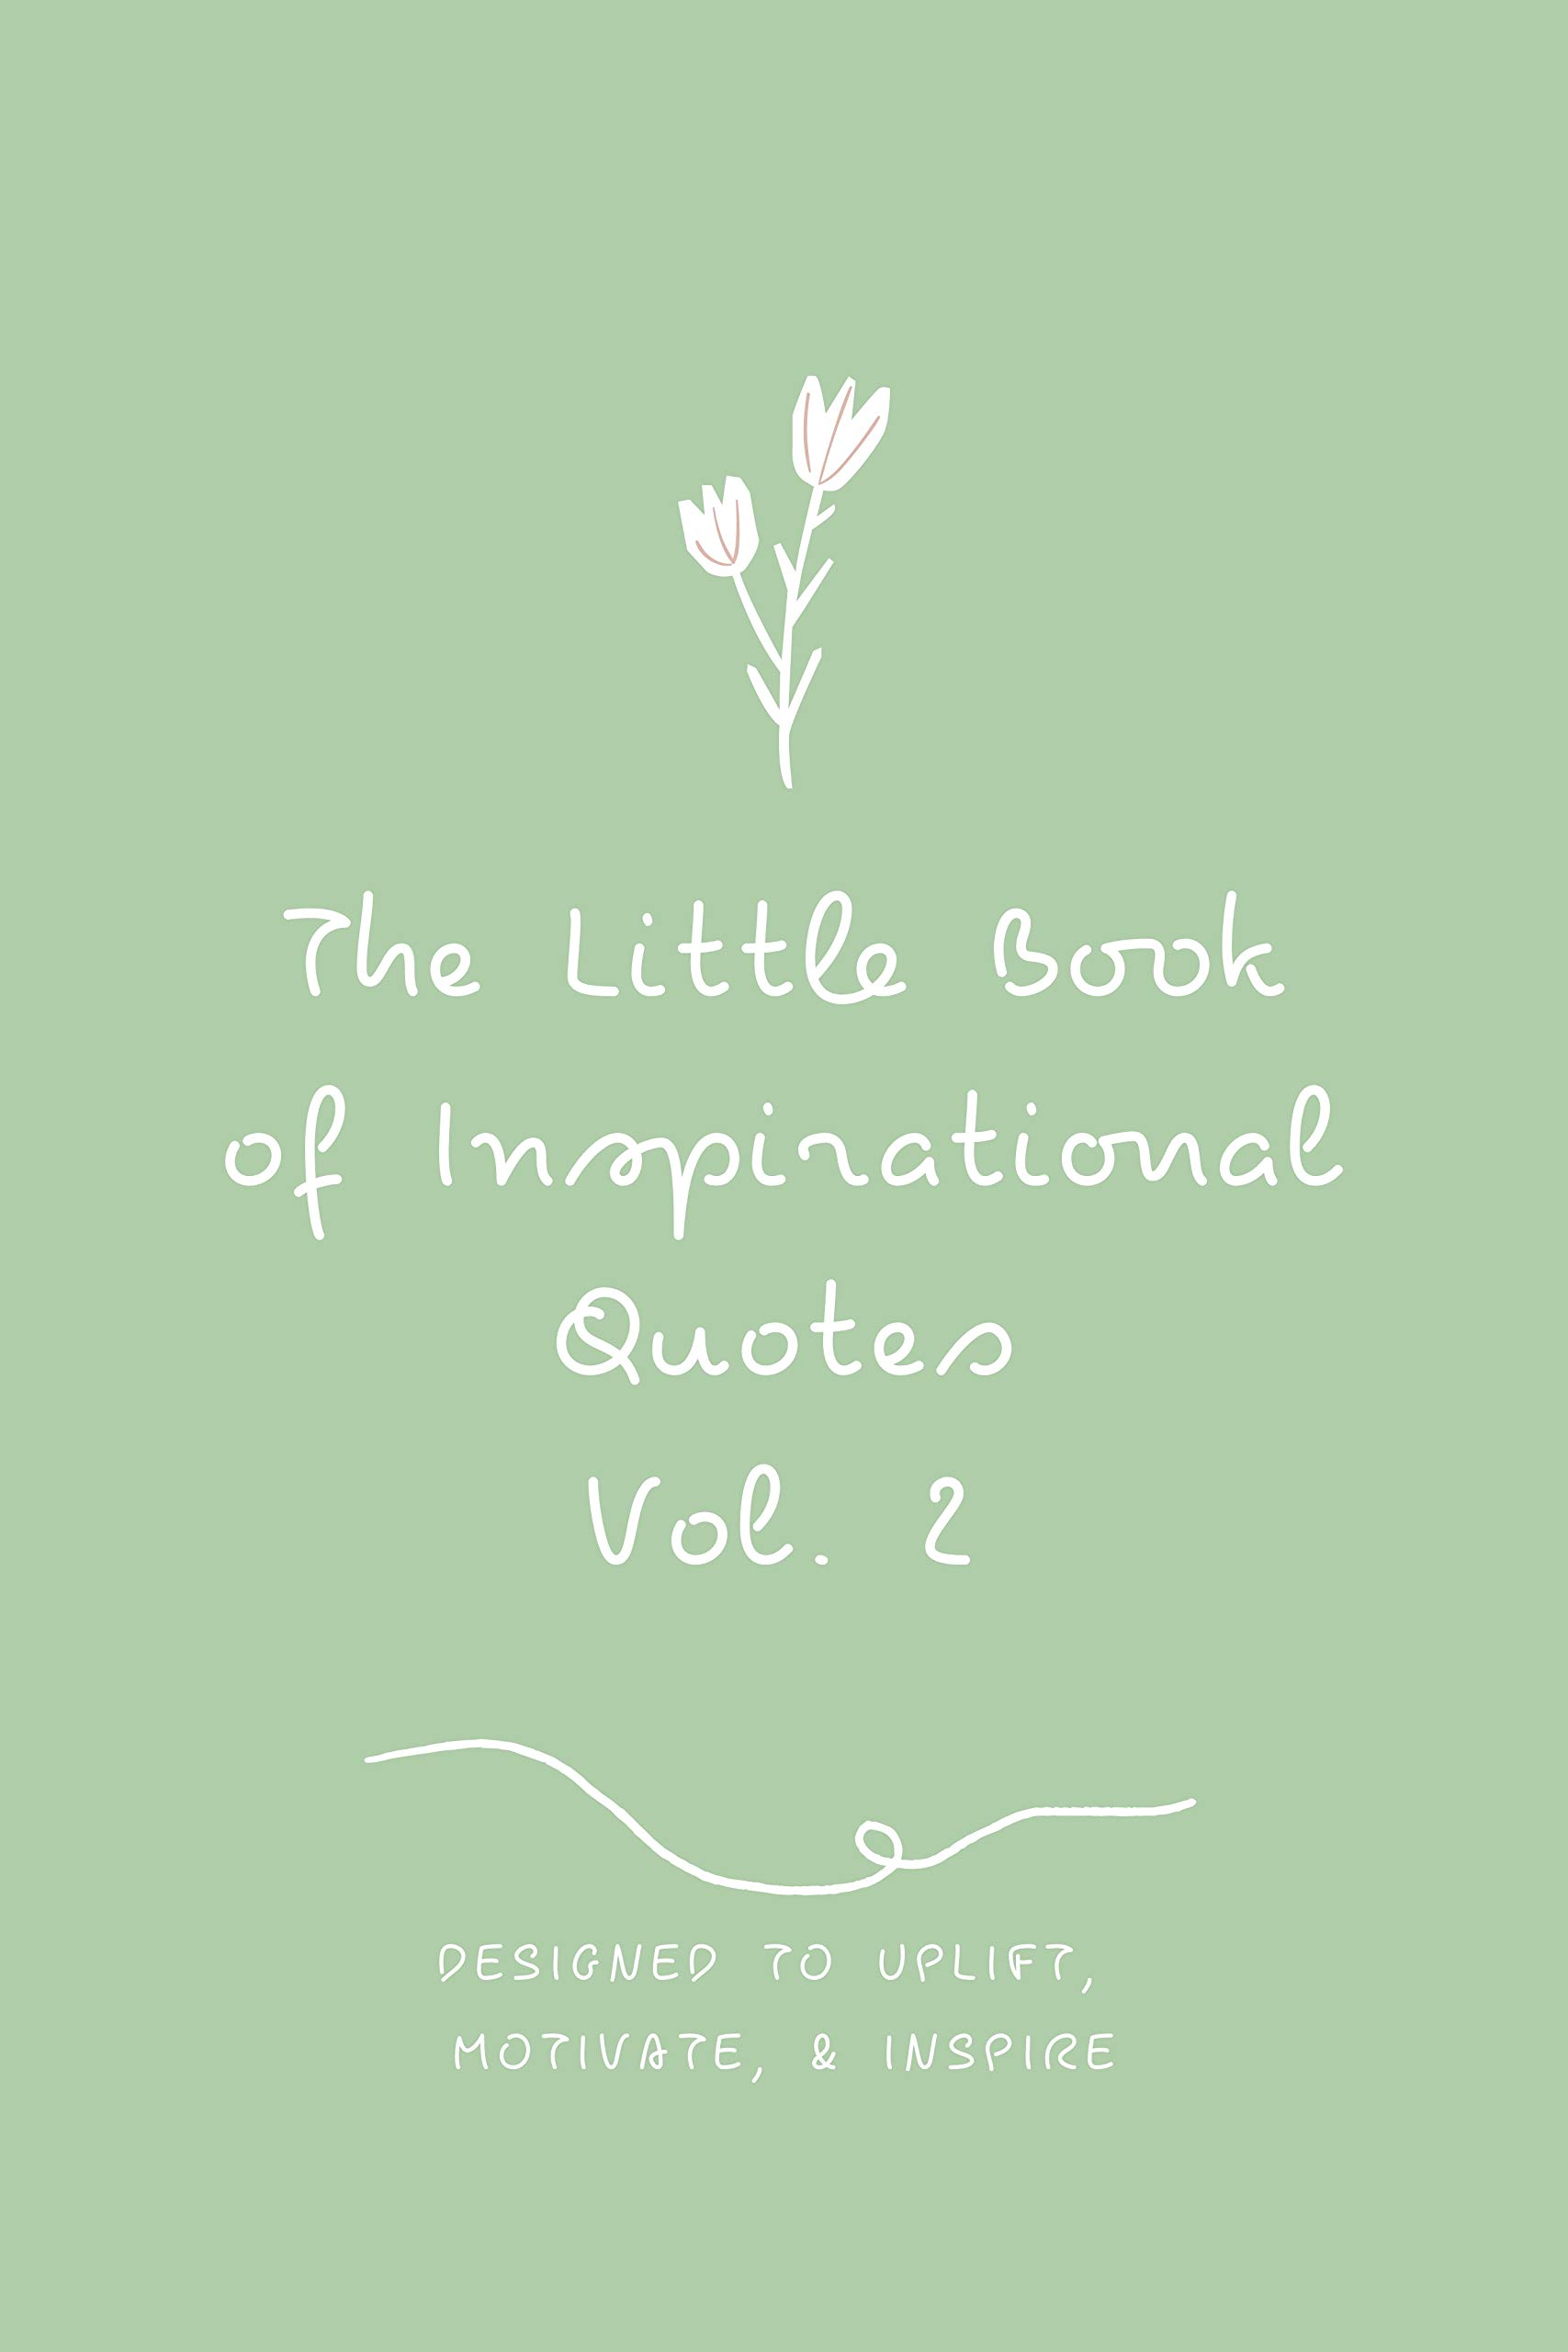 The Little Book of Inspirational Quotes Vol. 2: Designed to Uplift, Motivate & Inspire